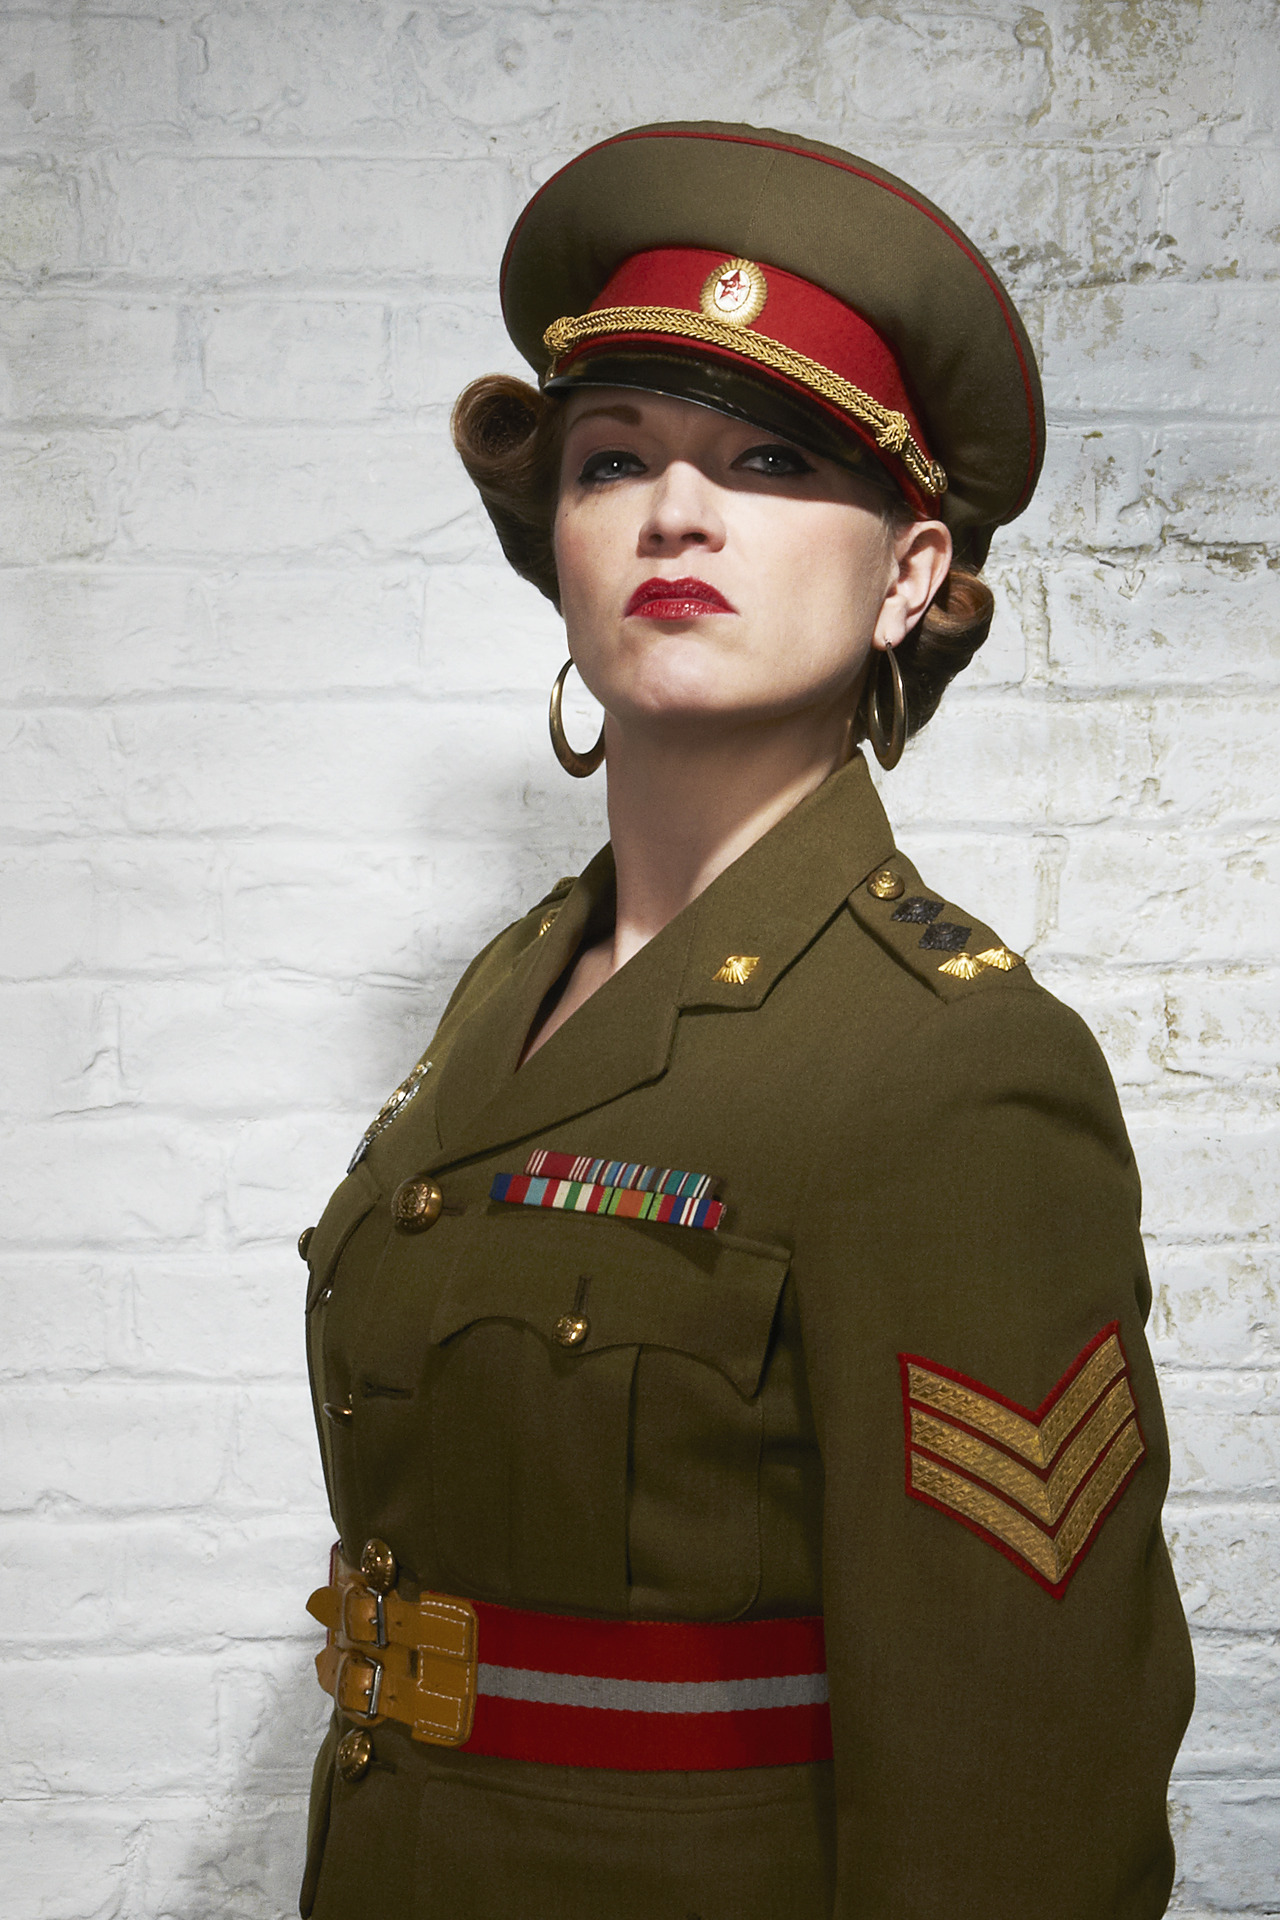 Photographing the superbly charismatic Stephanie Ware in full army costume. Steph had been busking with her ukulele on Broadway Market in the morning, and I had to get her in front of camera in her full get-up, resulting in a really fun and interesting series of shots.